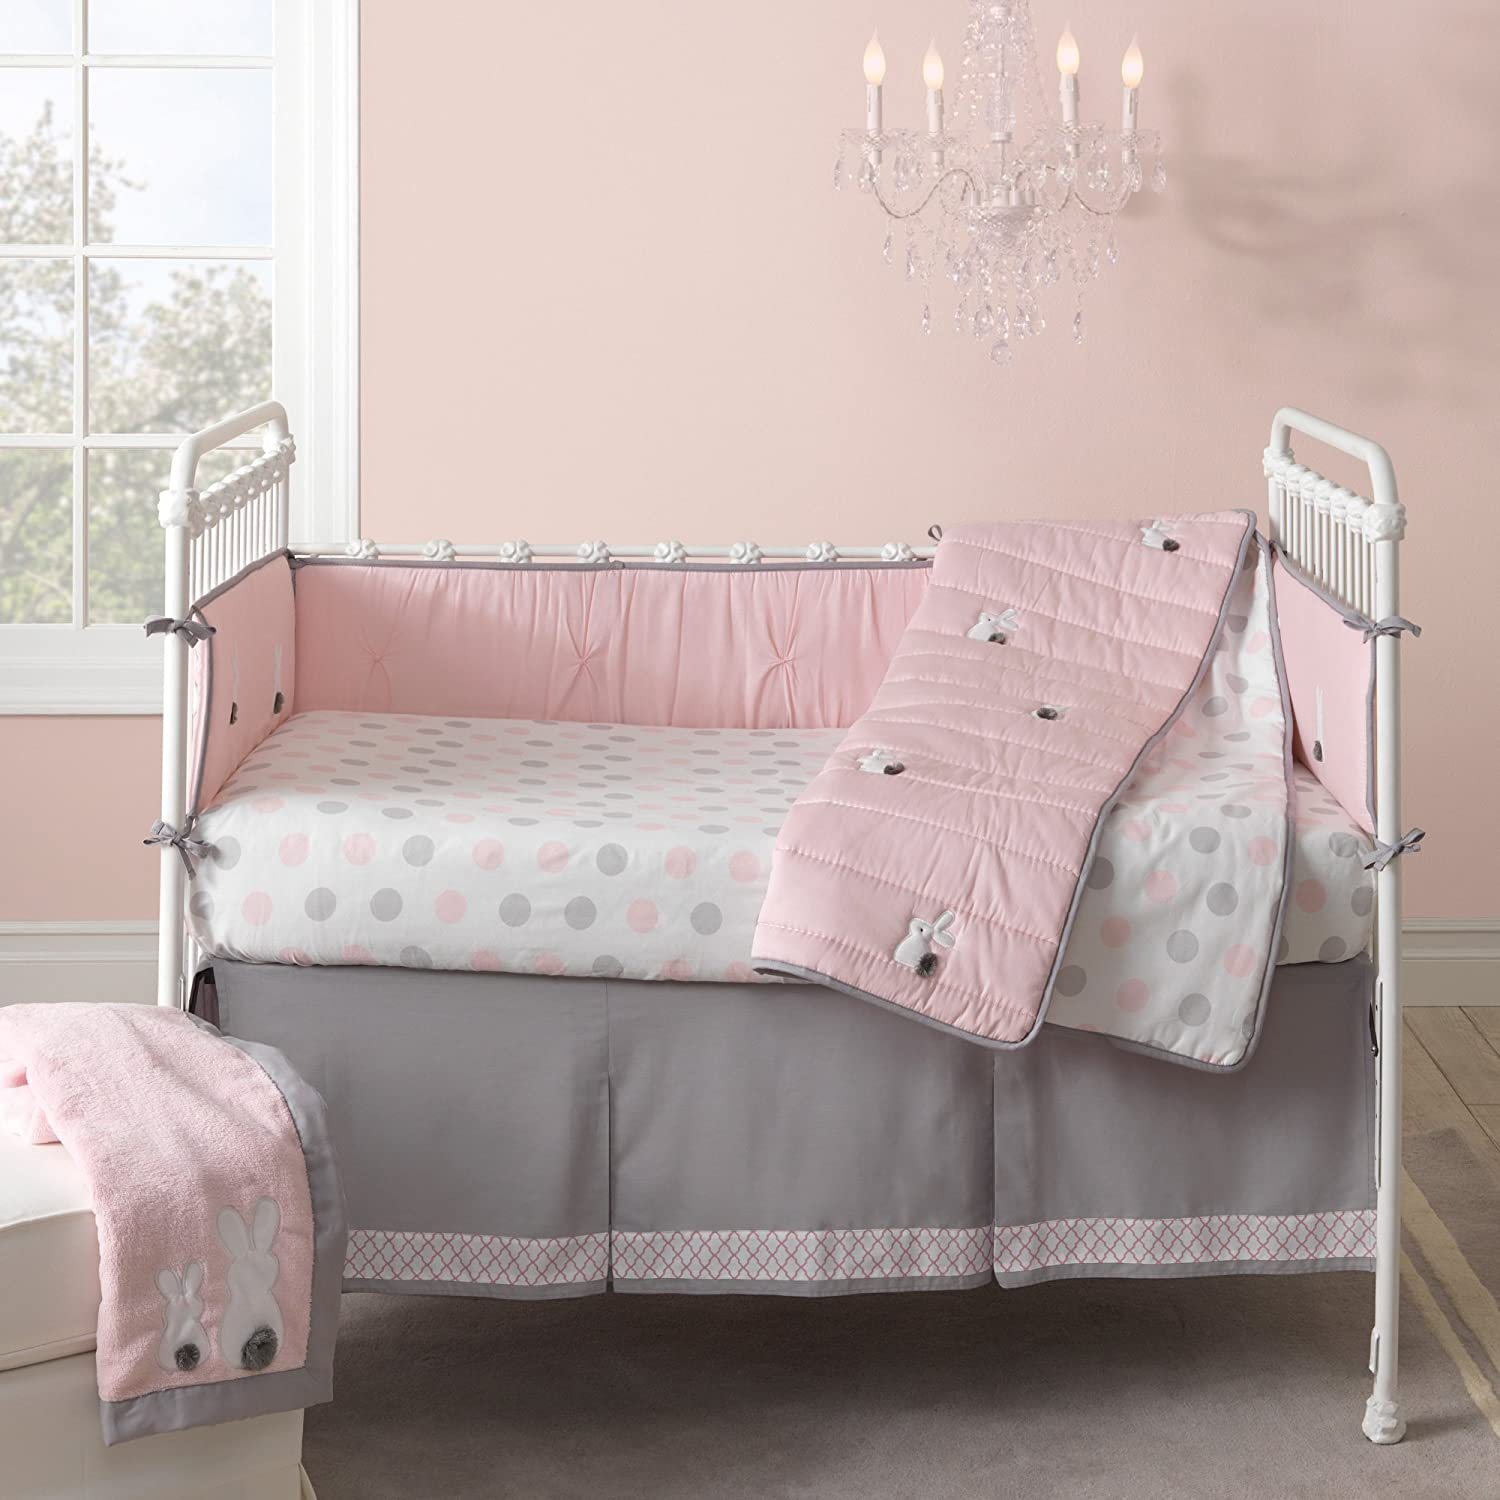 Lambs and Ivy Polka Dot Bunny Crib Bedding